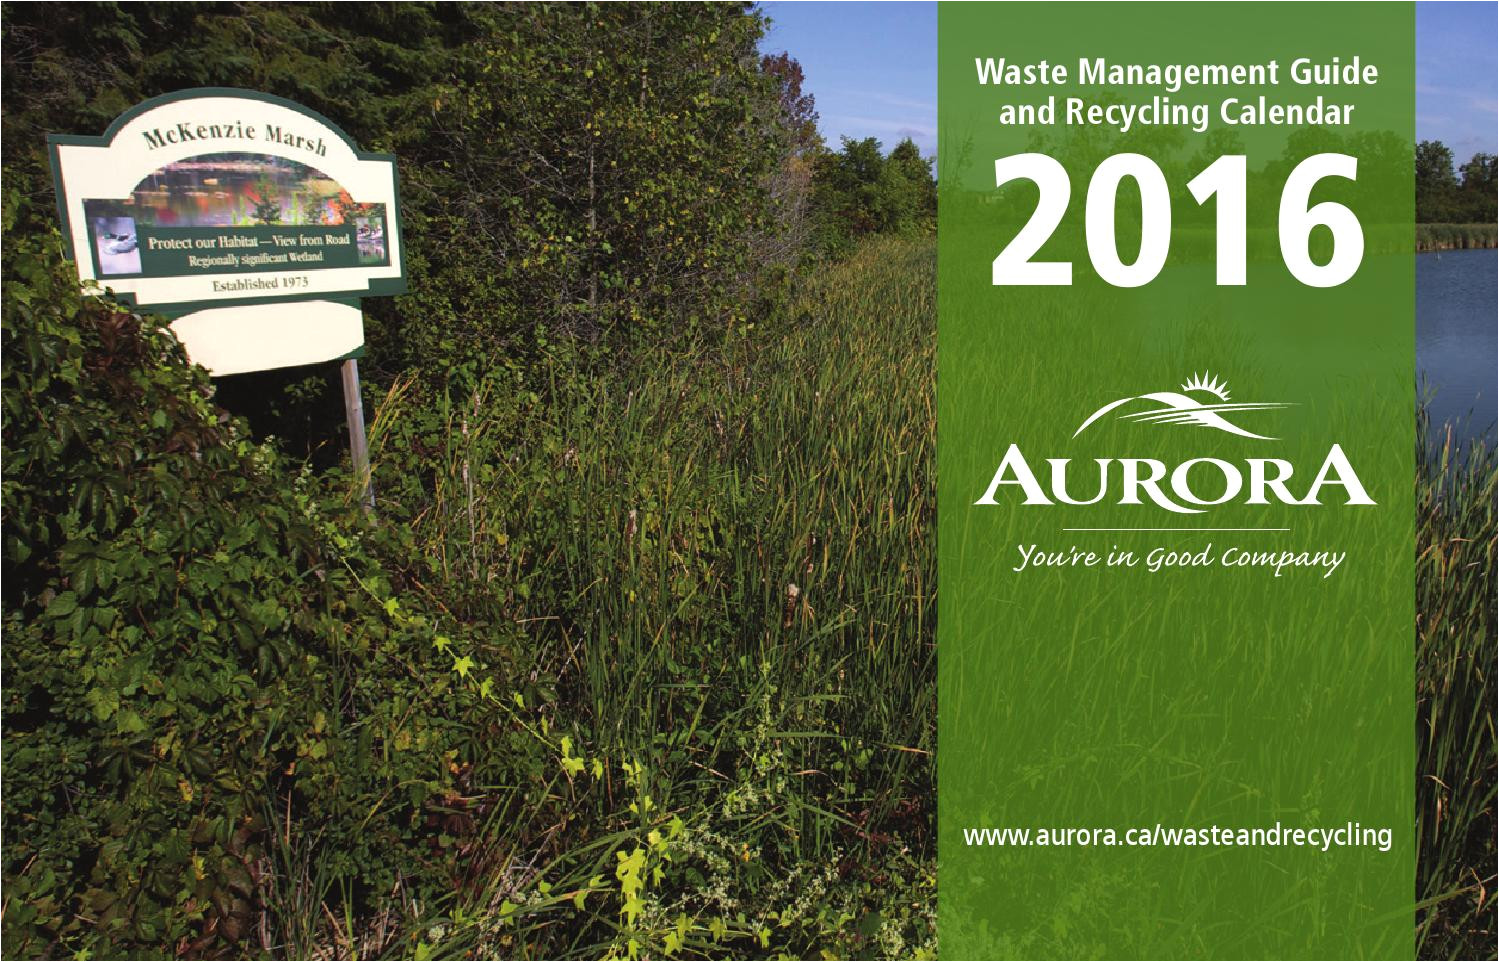 2016 waste management guide and recycling calendar by town of aurora issuu